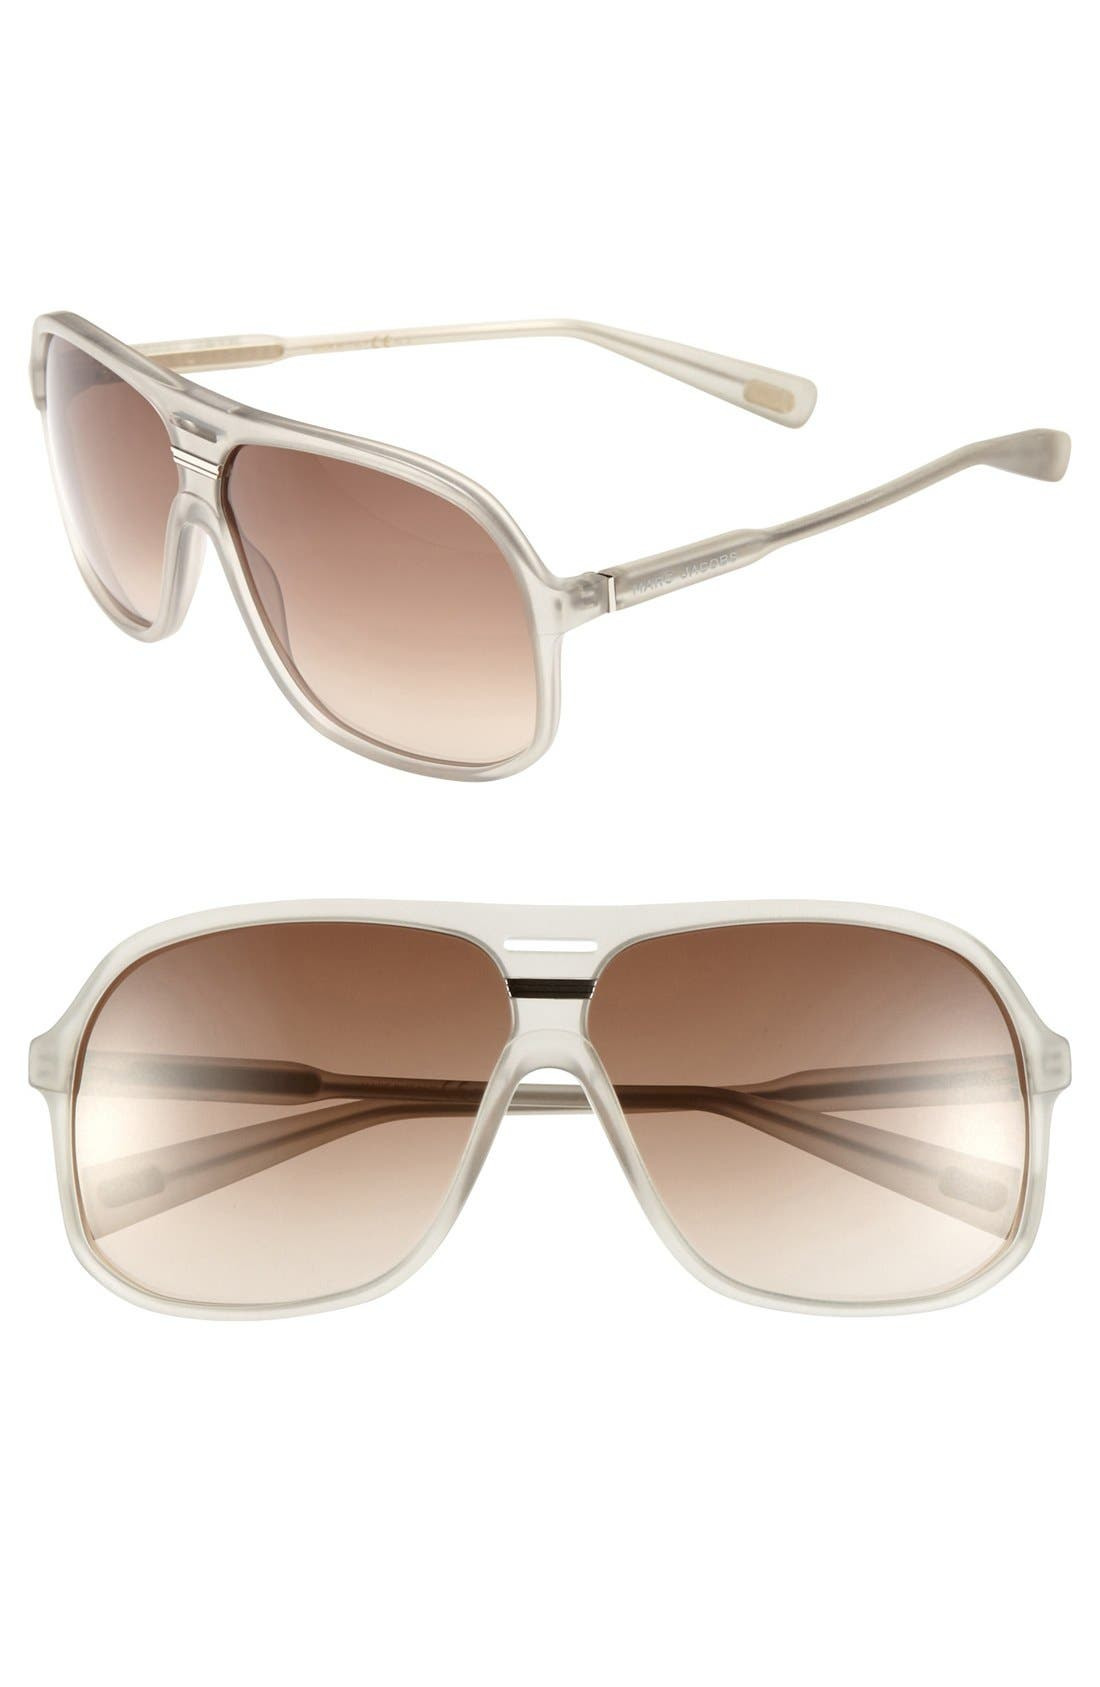 Main Image - MARC JACOBS 63mm Sunglasses